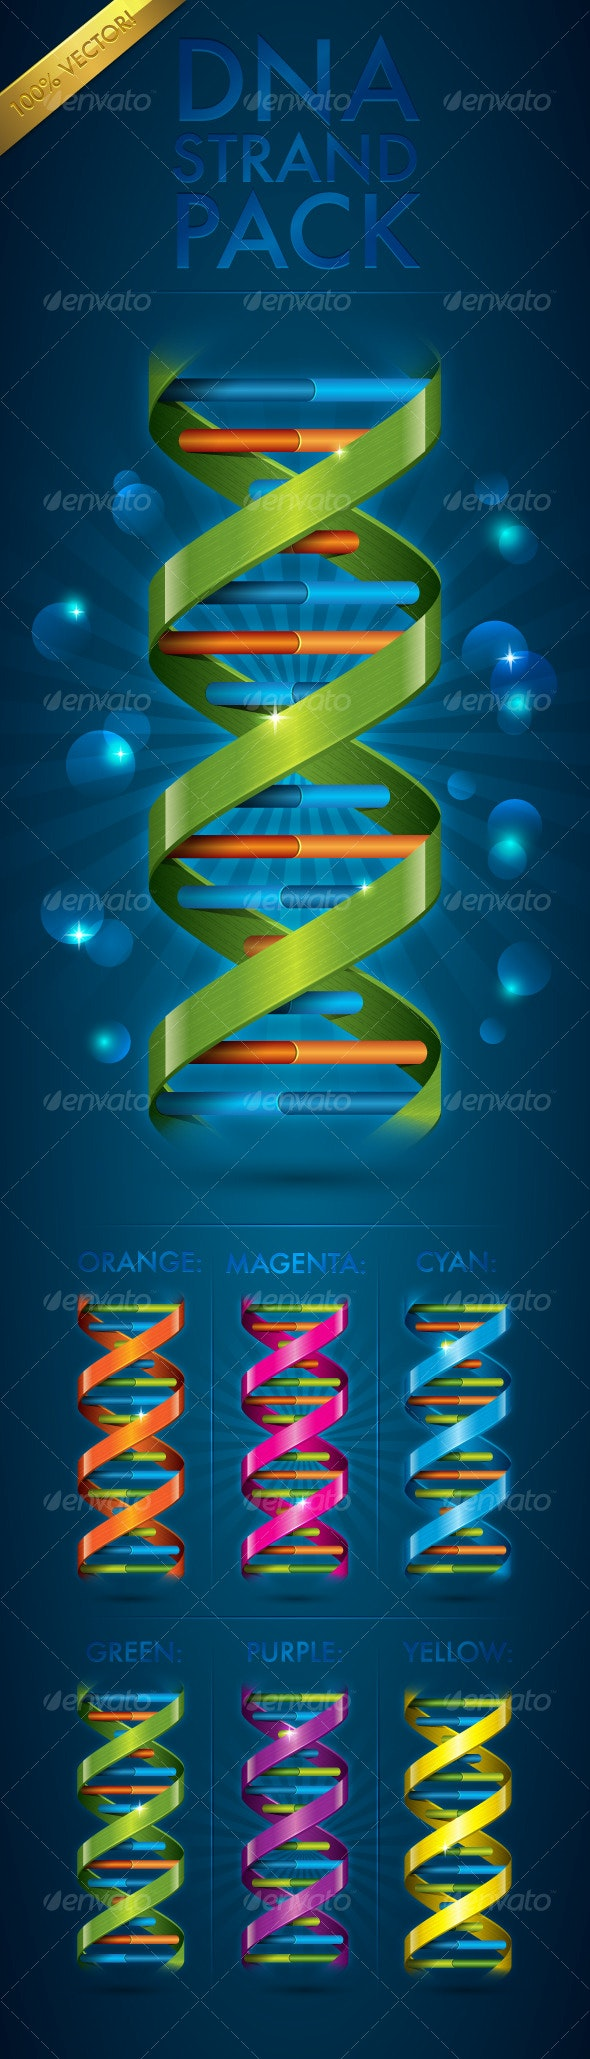 DNA Strand Pack - Organic Objects Objects